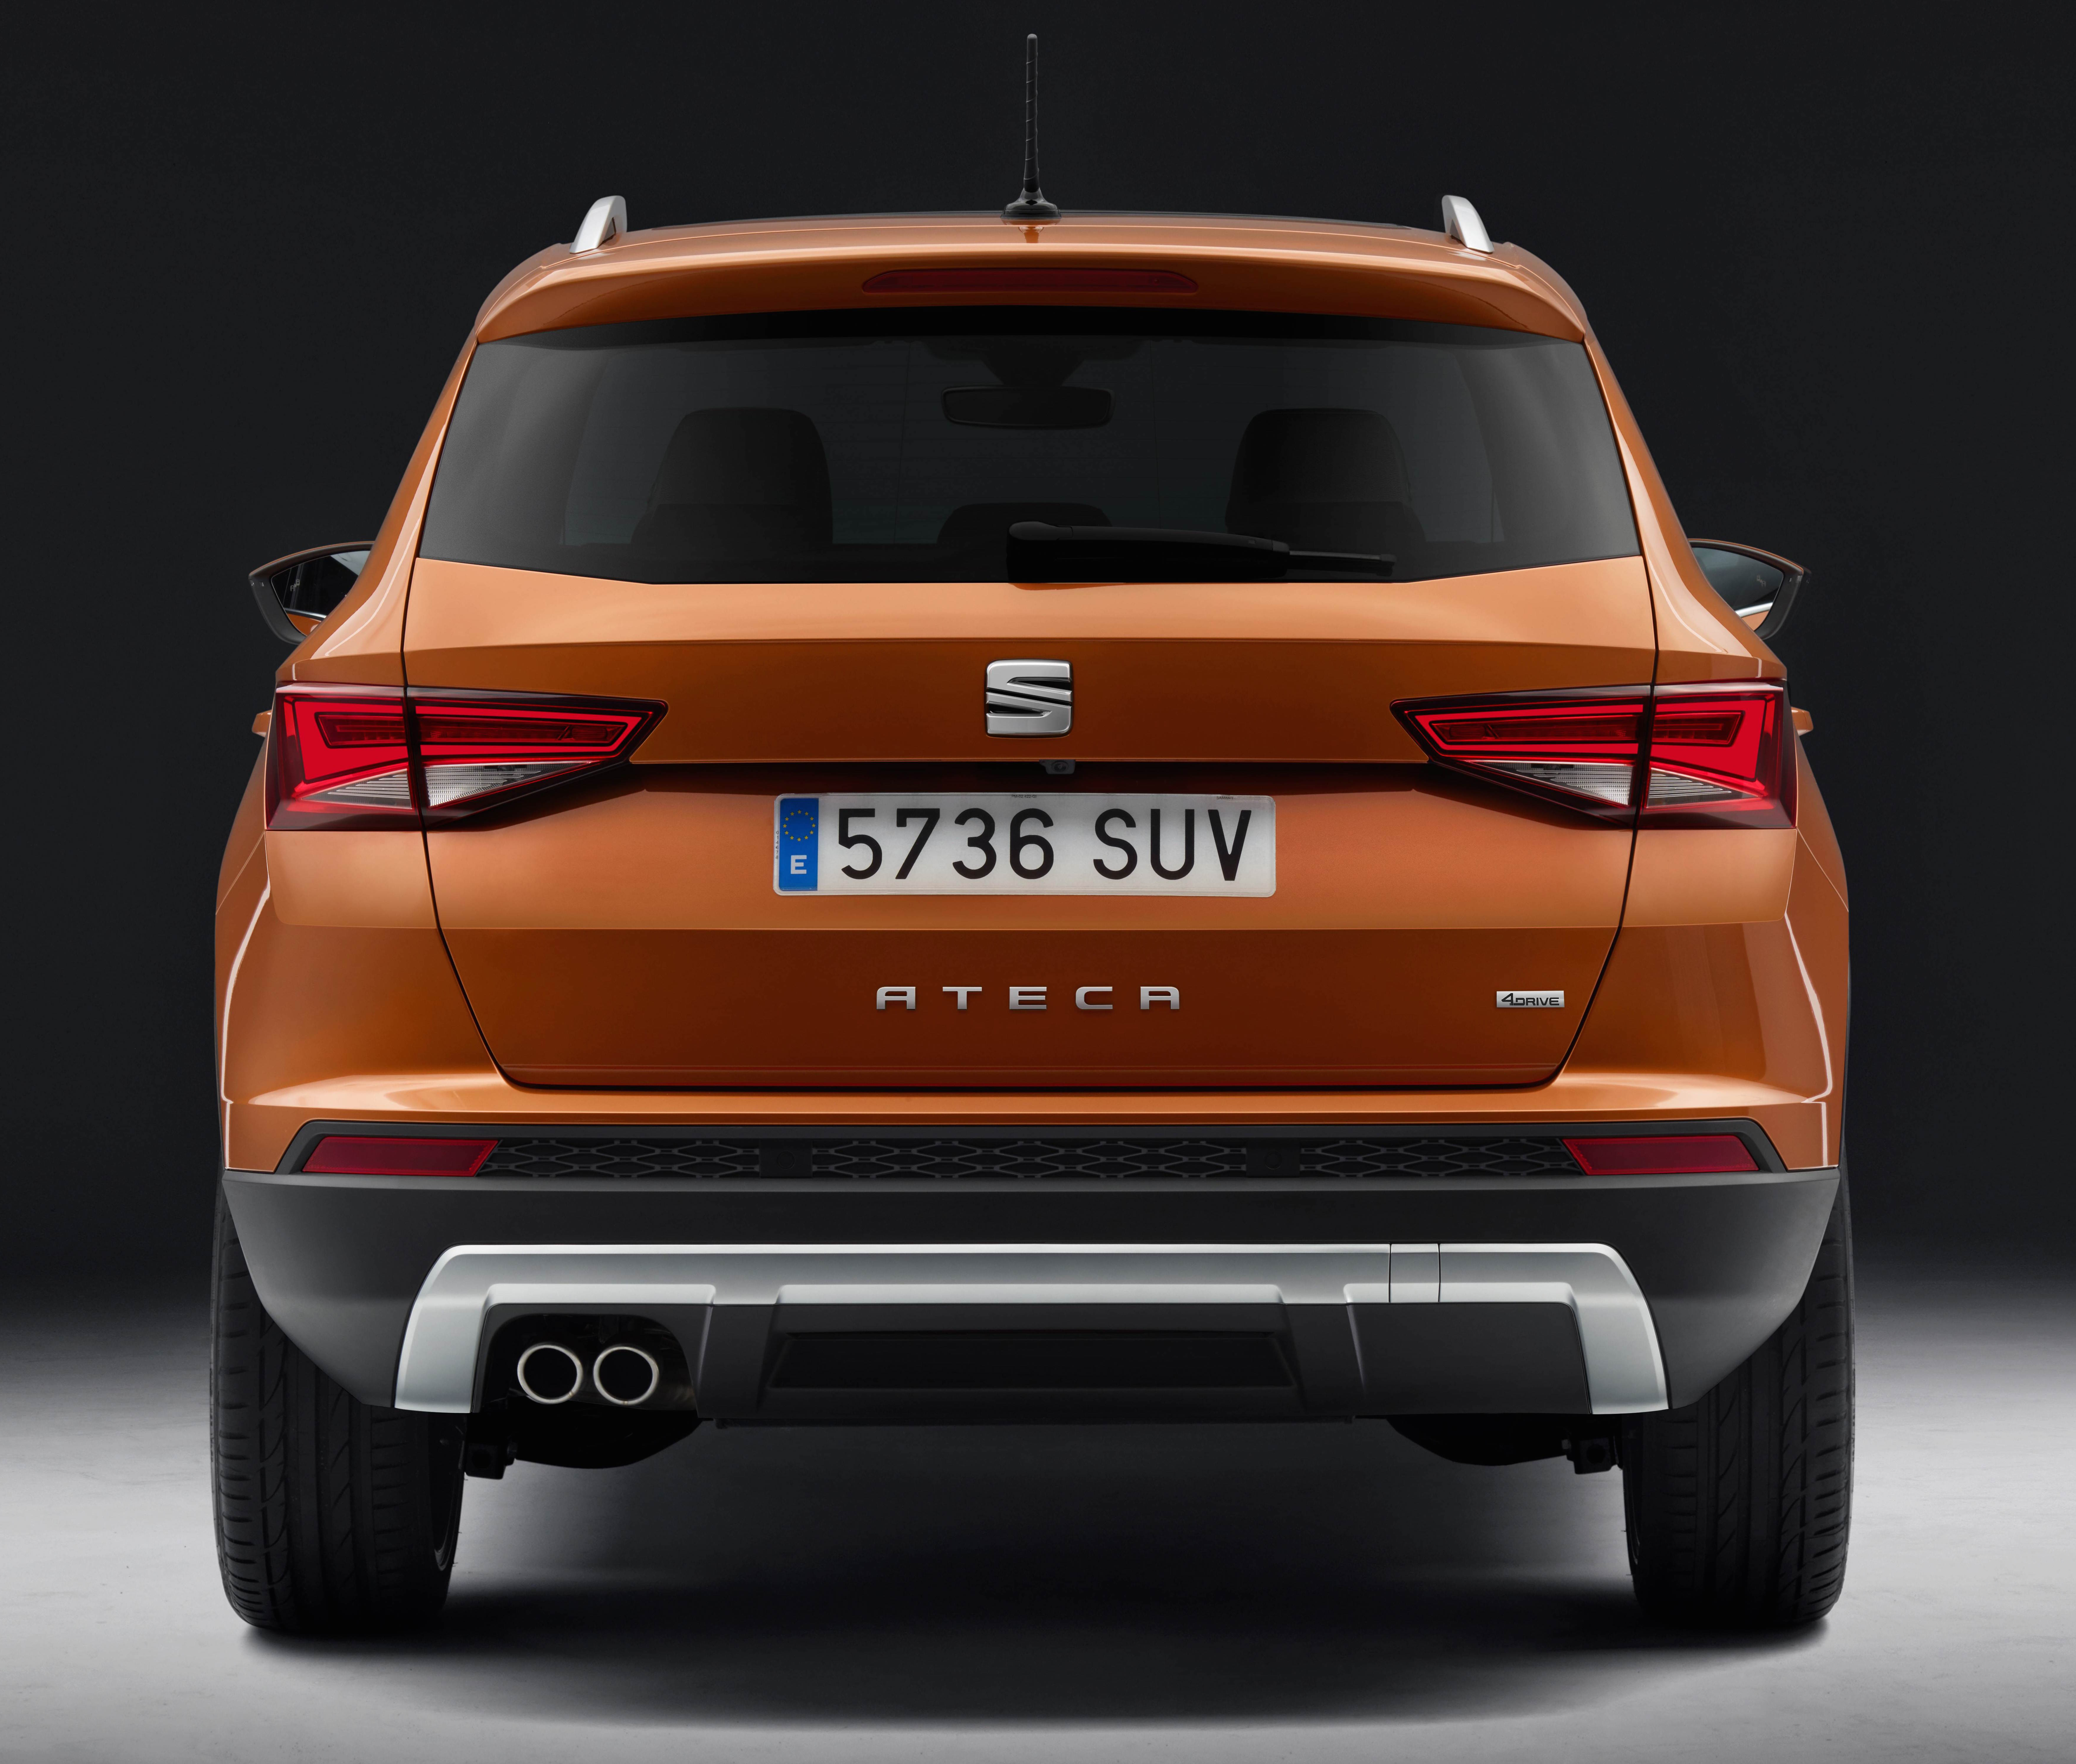 seat ateca unveiled brand s first ever suv model image 439651. Black Bedroom Furniture Sets. Home Design Ideas